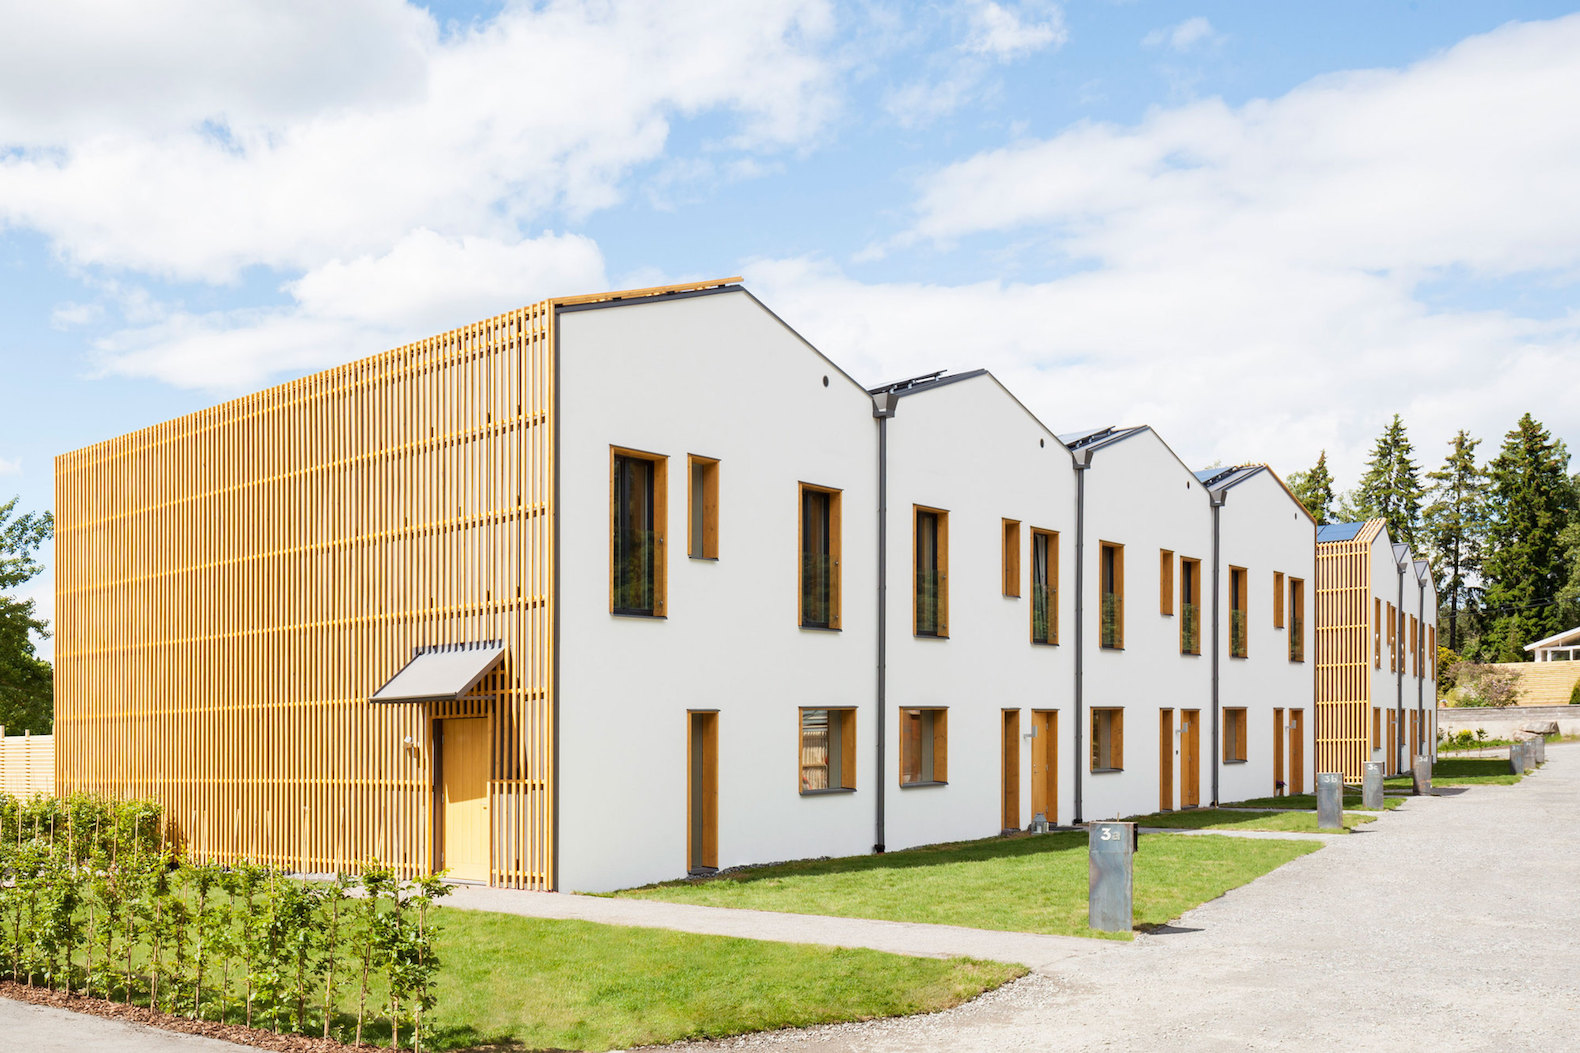 Solar Powered Swedish Homes Produce At Least As Much Energy As They Consume